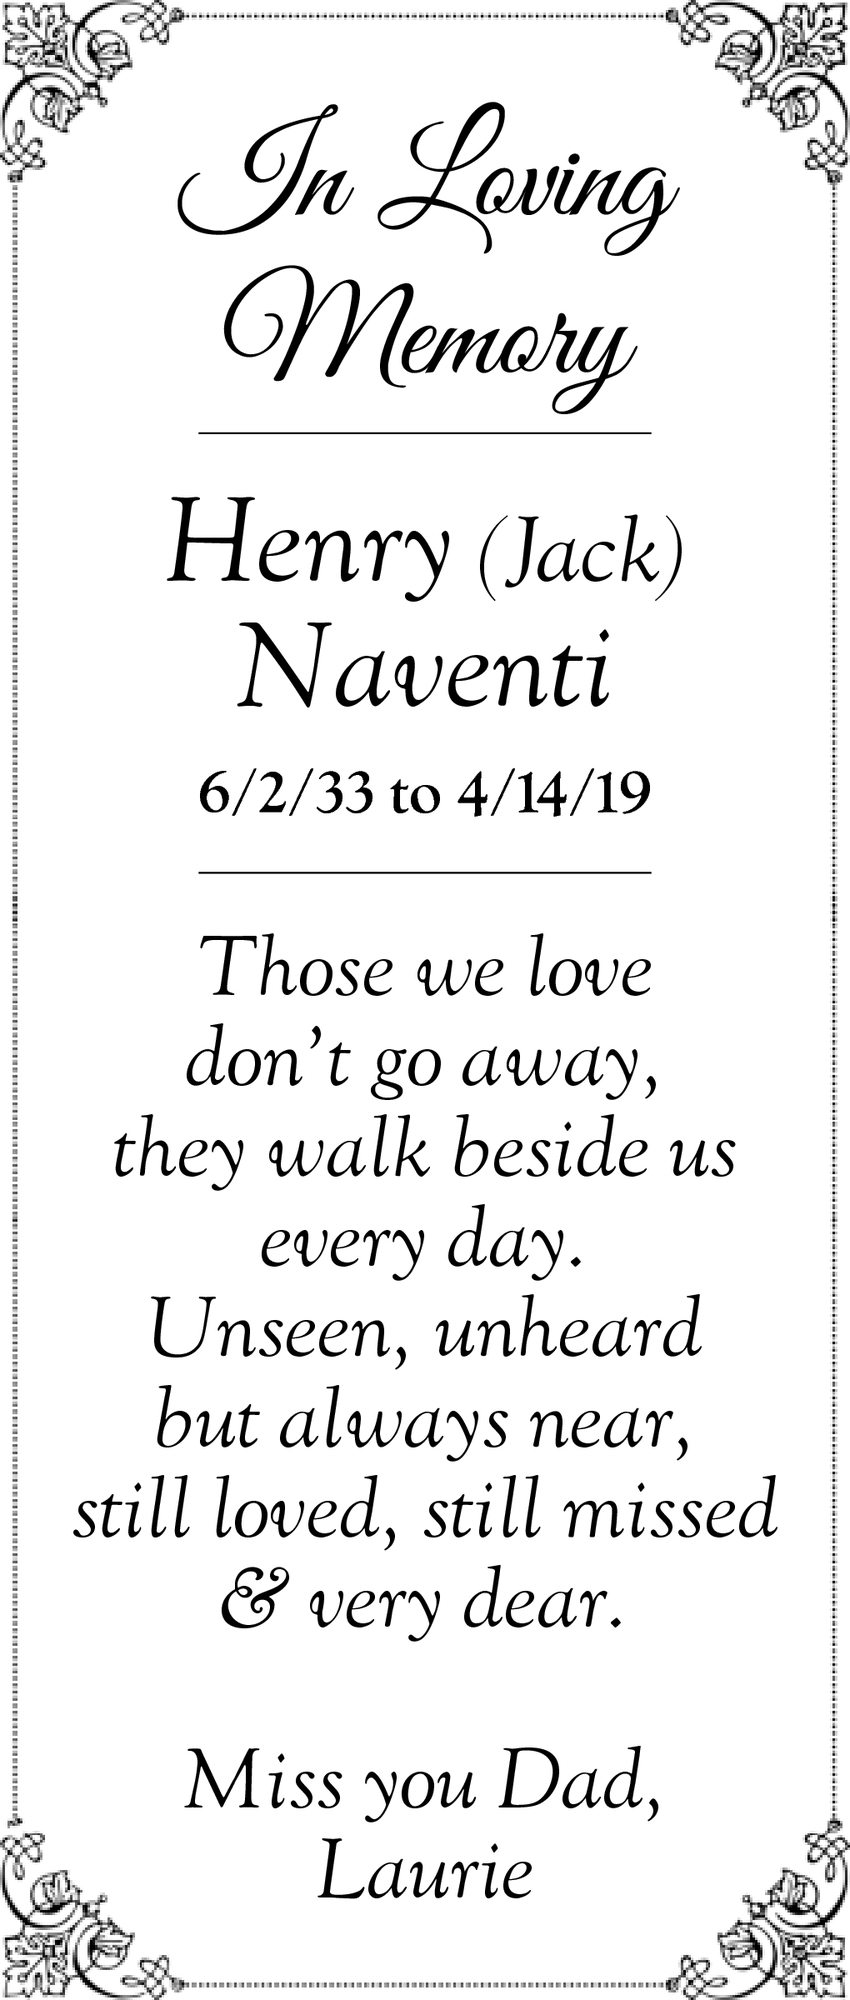 In Loving Memory Of Henry (Jack) Naventi